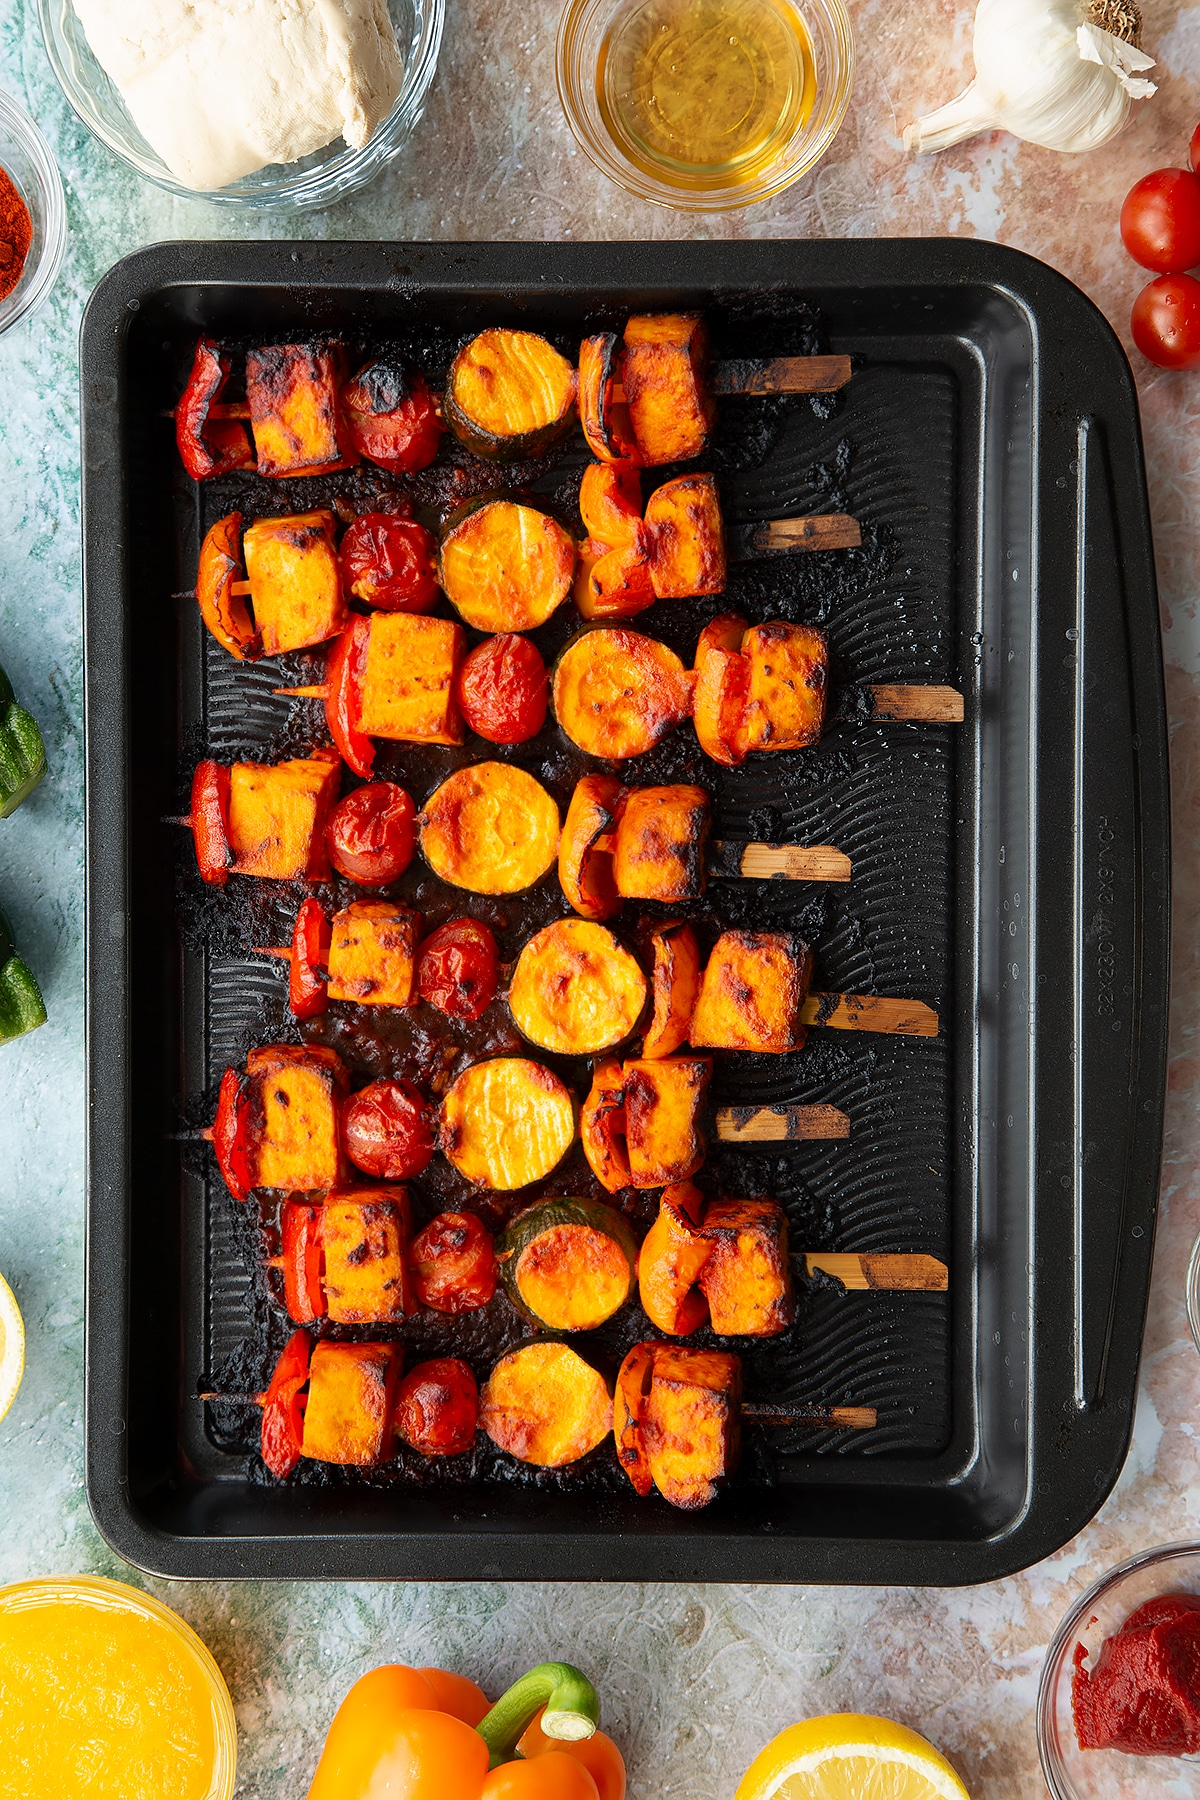 Cooked tofu skewers lined up on a baking tray.